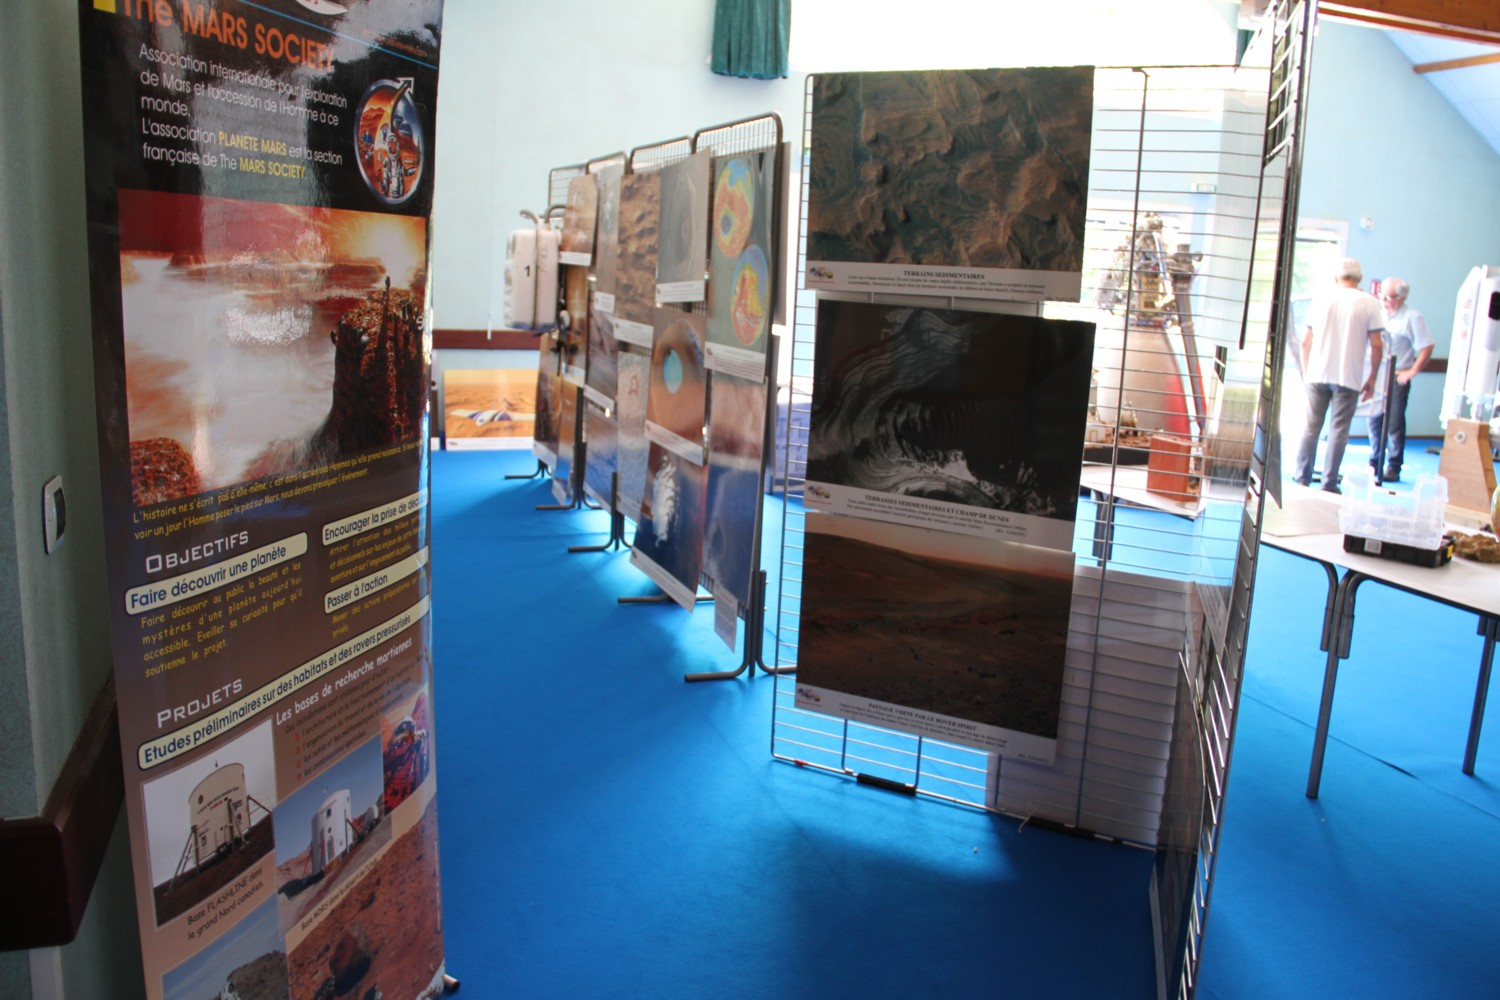 16 06 09 - 15h 25m 12s - expo apm st wandrille r